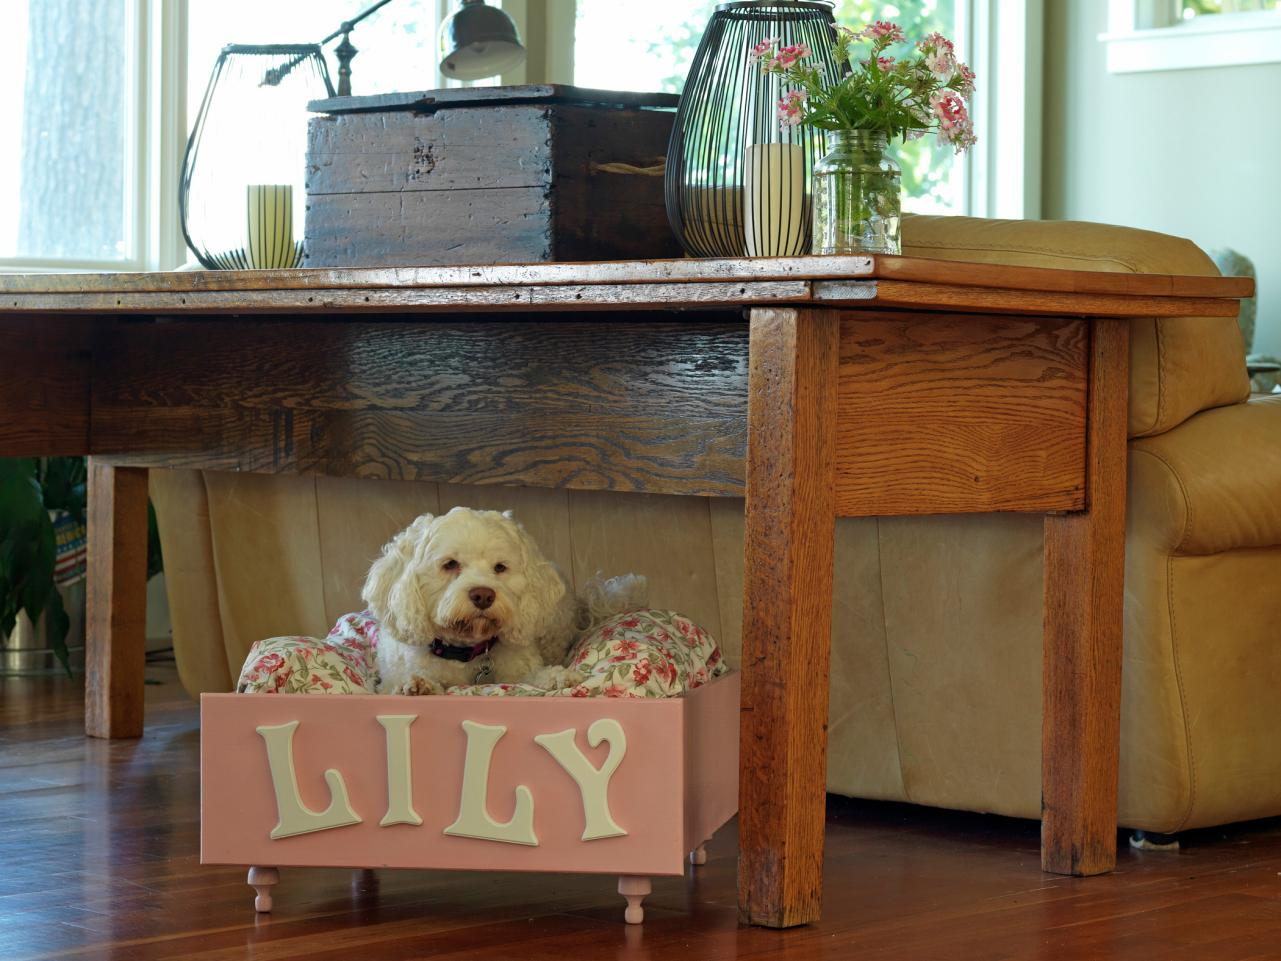 inch high accent tables probably fantastic unbelievable make how pet out old dresser drawer tos diy dog from end table susan teare made beach house marble and gold coffee mid